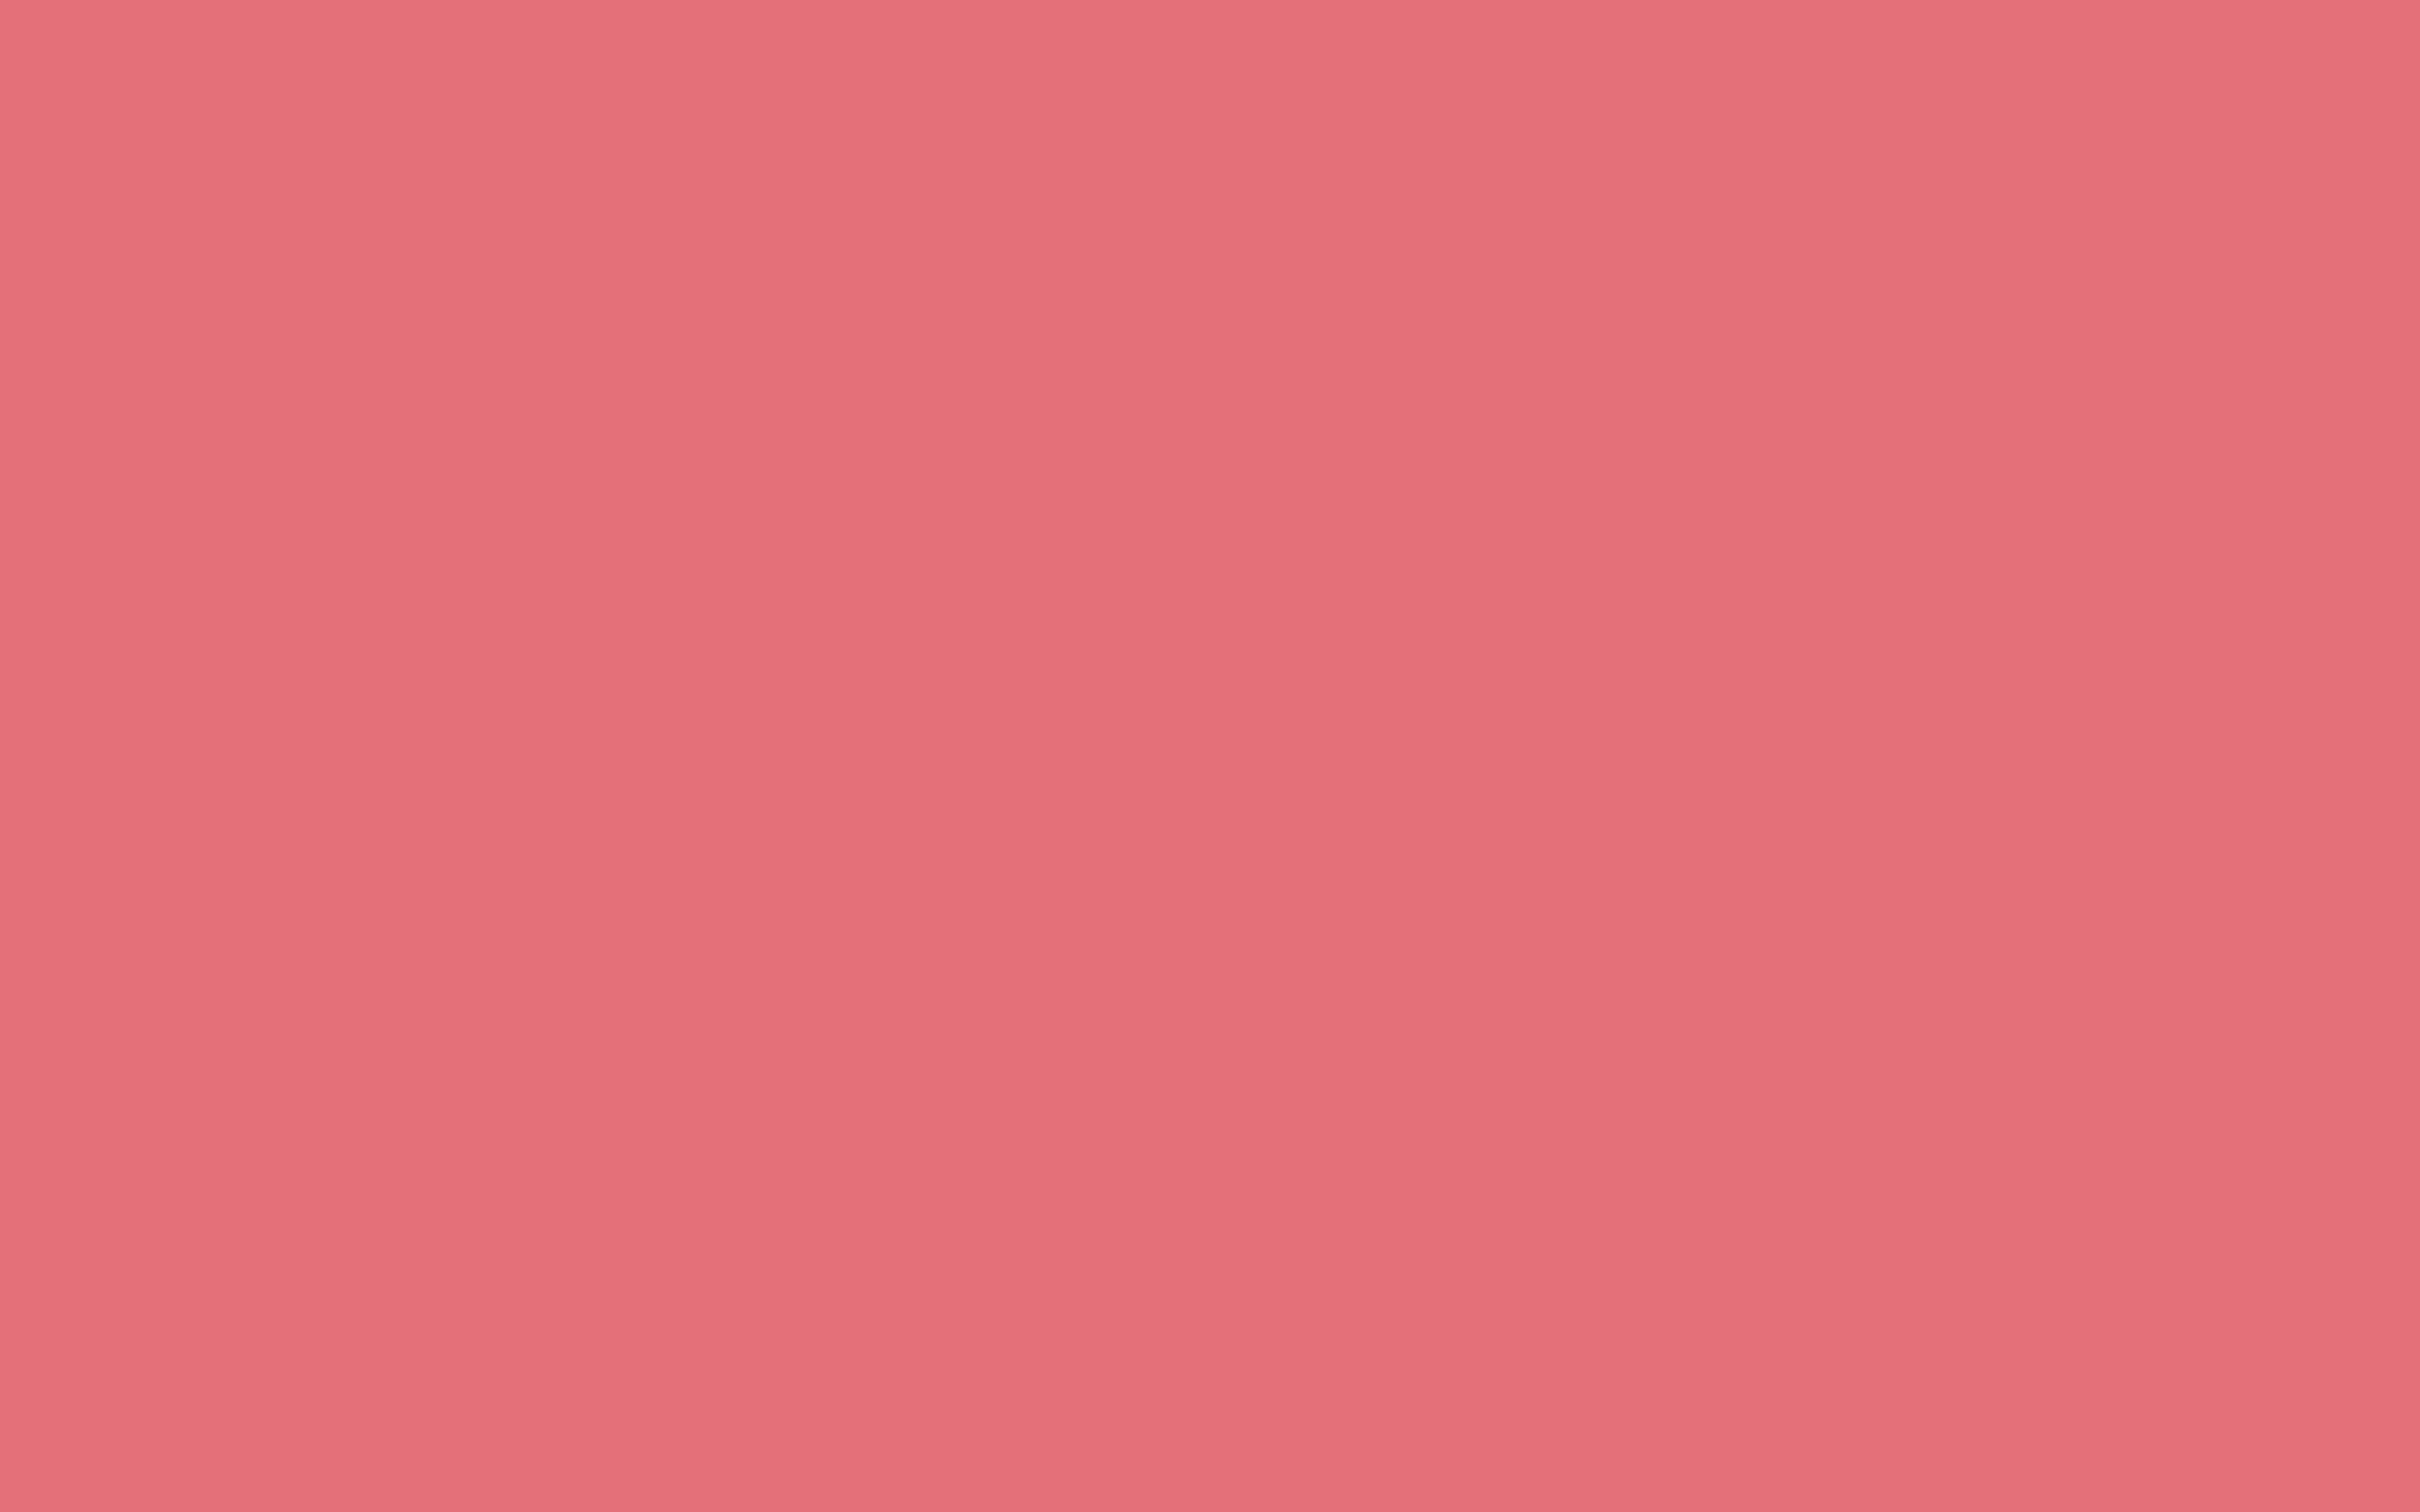 2880x1800 Candy Pink Solid Color Background